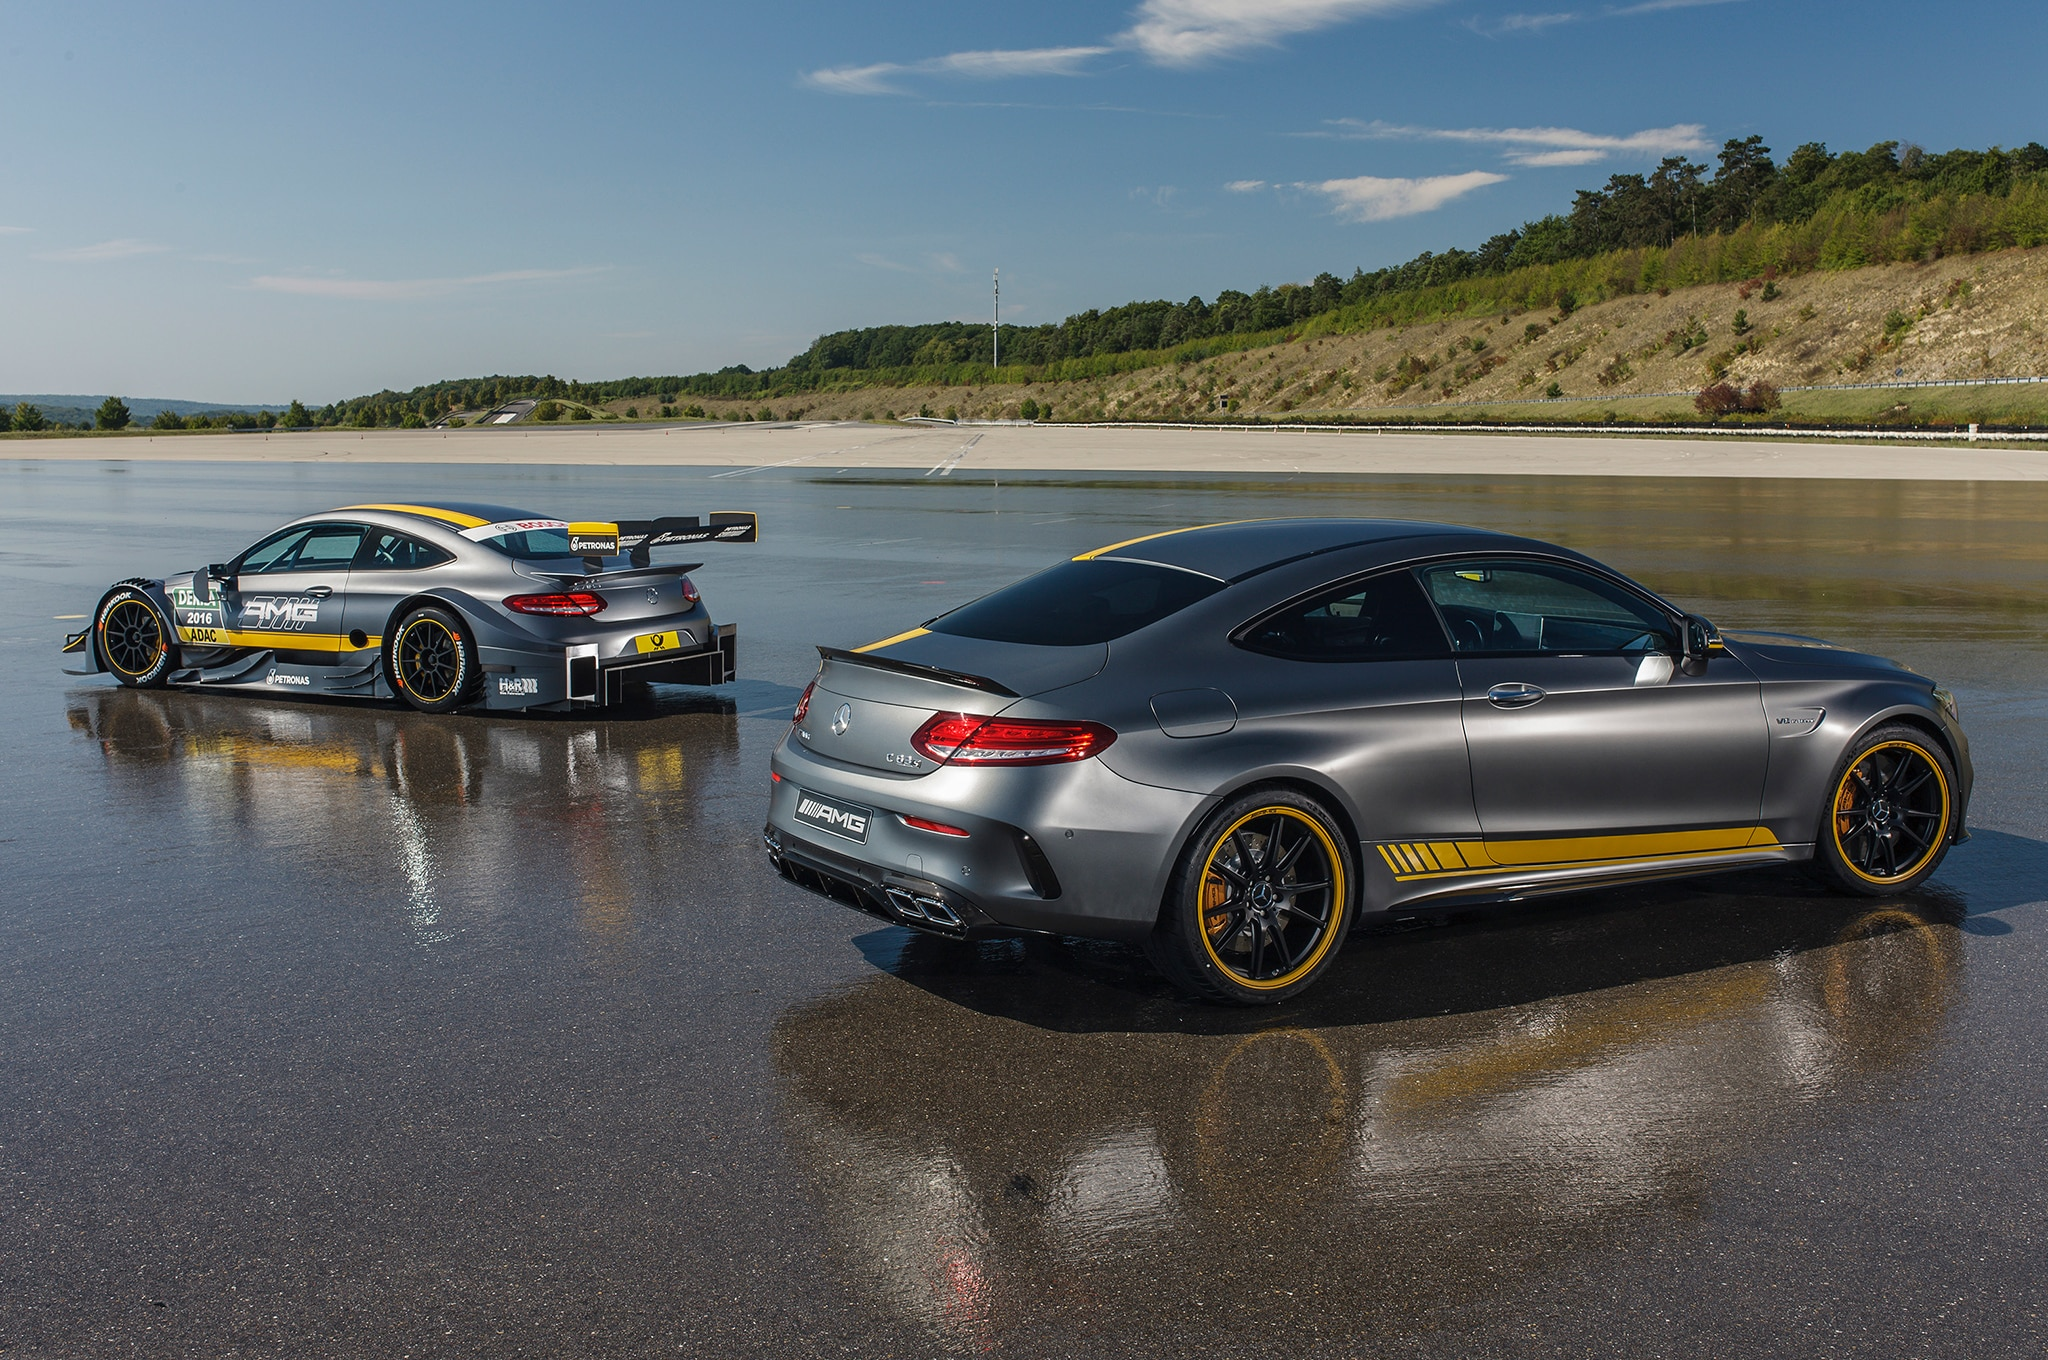 Mercedes Amg Coupe Edition Dtm Racing Car Revealed